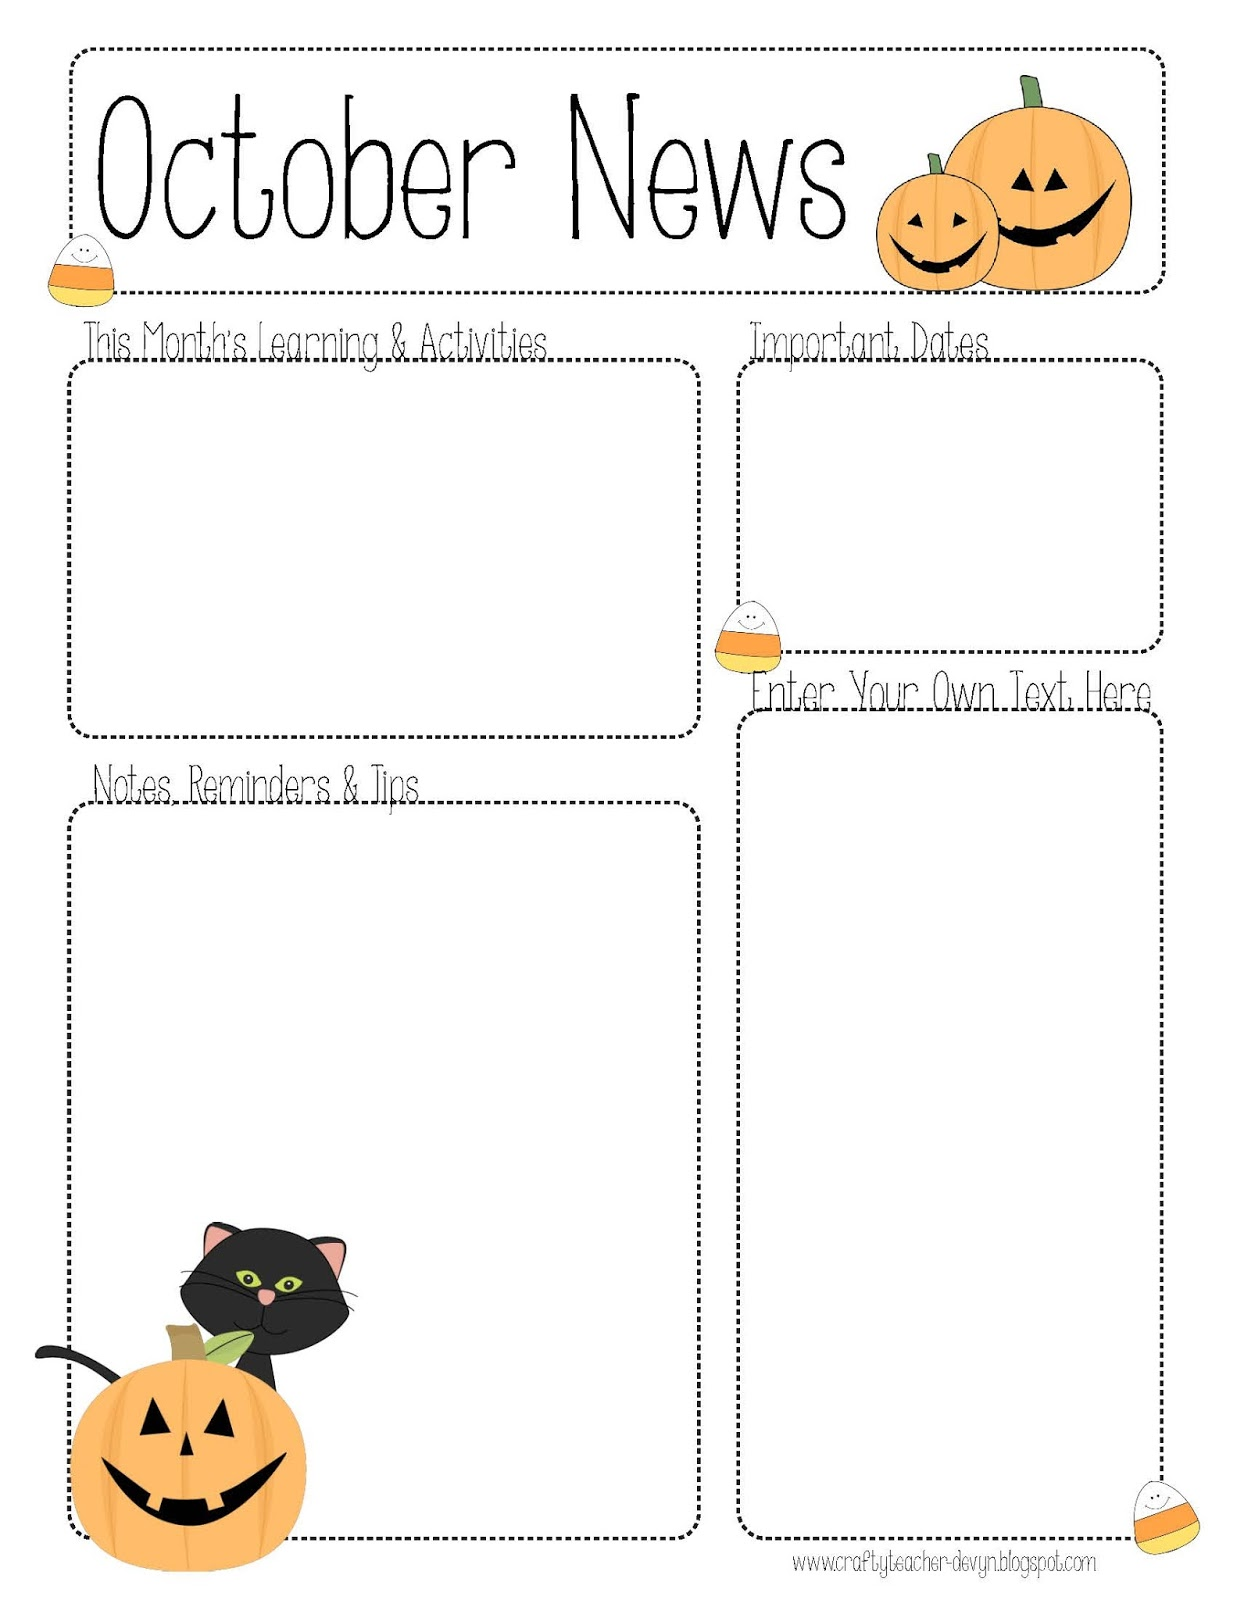 free online newsletter templates pdf - october newsletter template the crafty teacher